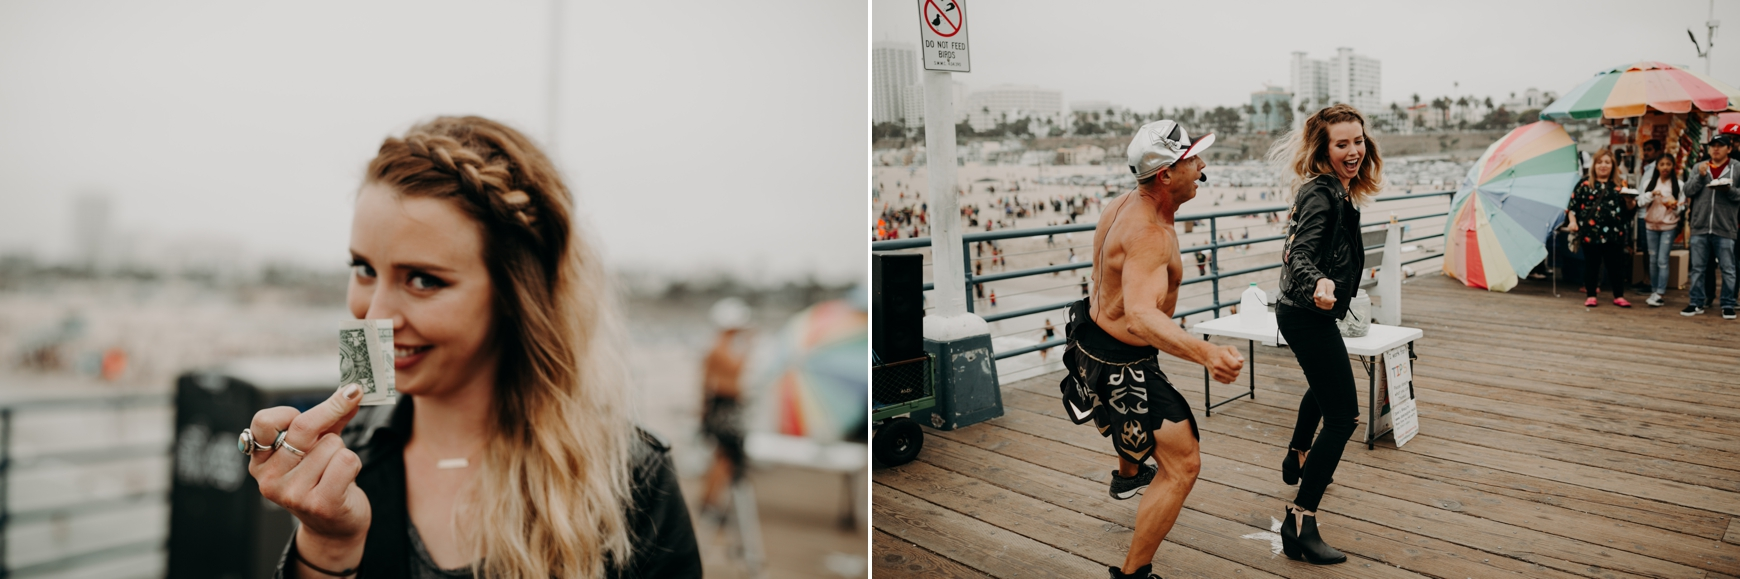 Santa Monica Pier Engagement Loni & Duke Emily Magers Photography-156.jpg